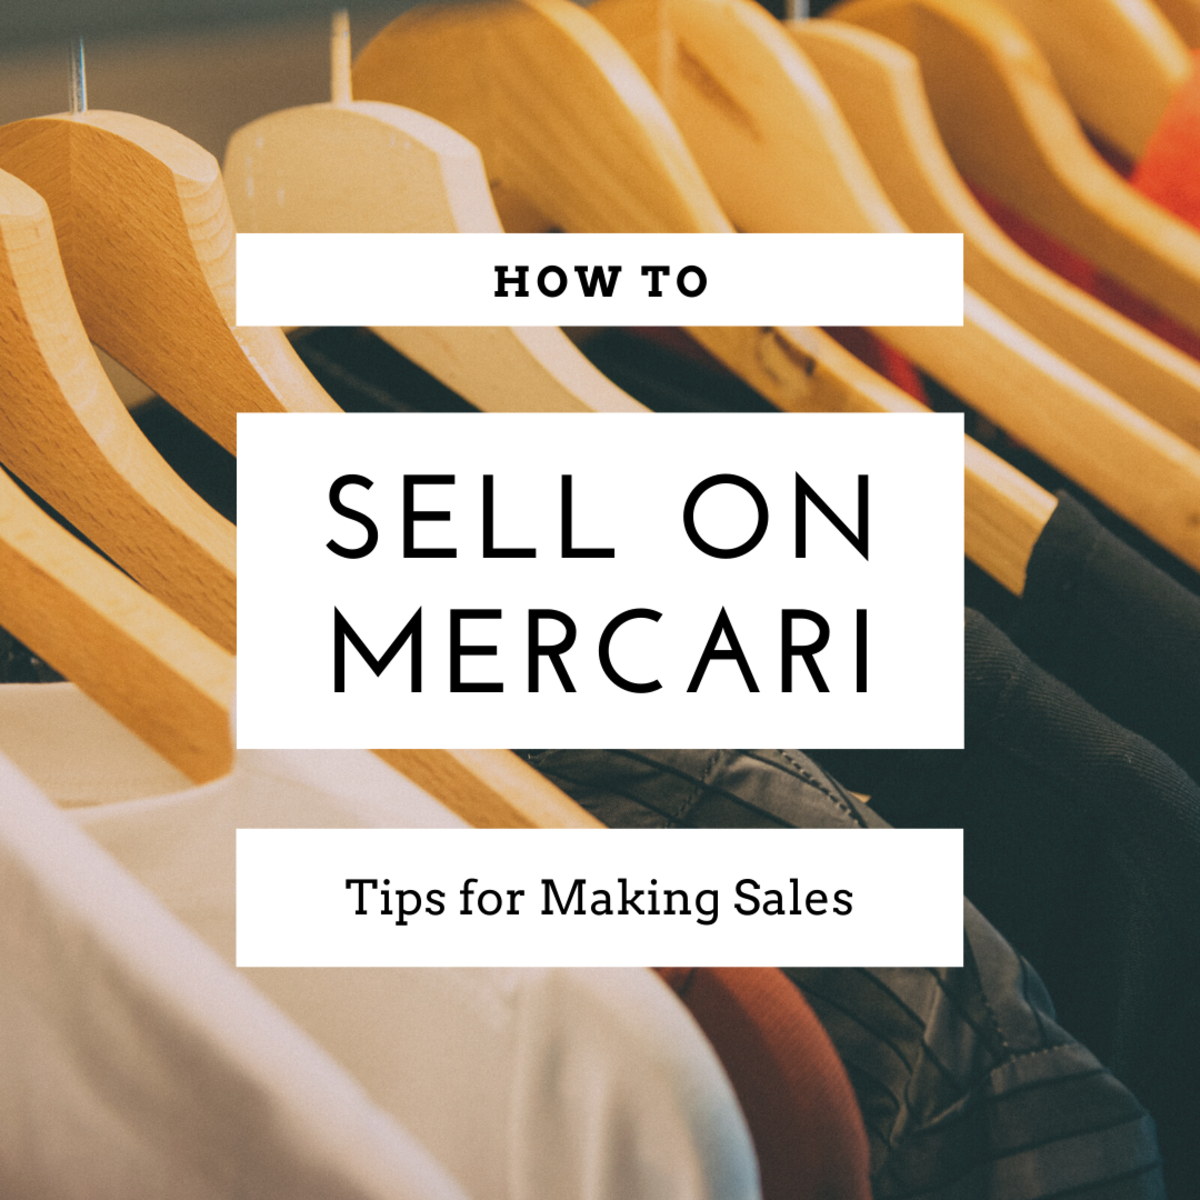 Learn how to sell clothes and other household items on Mercari.